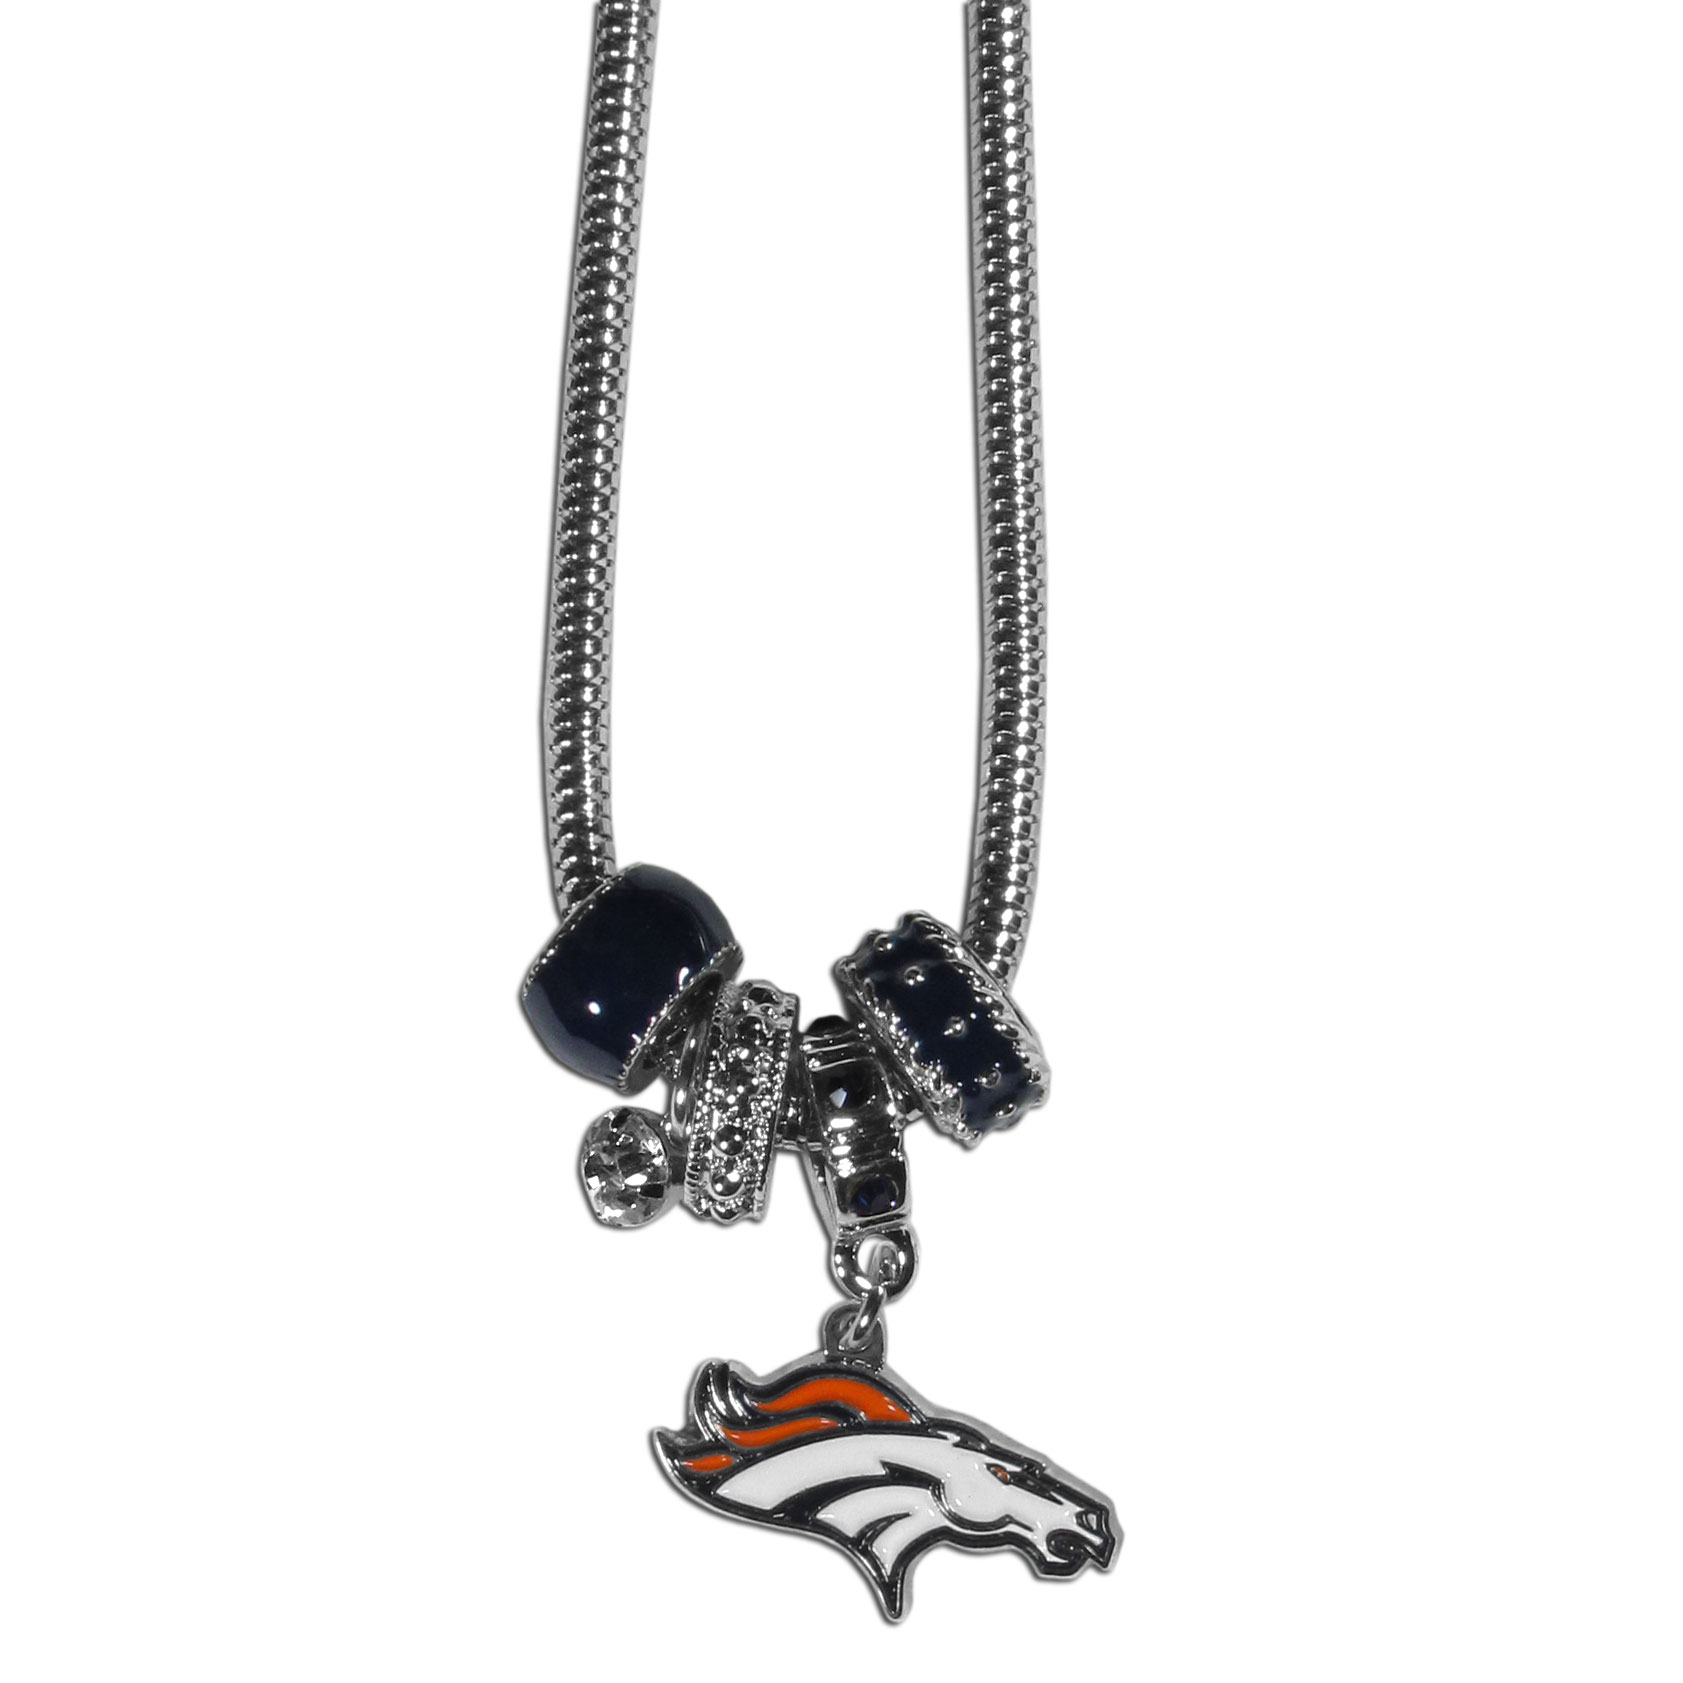 Denver Broncos Euro Bead Necklace - We have combined the wildly popular Euro style beads with your favorite team to create our Denver Broncos bead necklace. The 18 inch snake chain features 4 Euro beads with enameled team colors and rhinestone accents with a high polish, nickel free charm and rhinestone charm. Perfect way to show off your team pride.